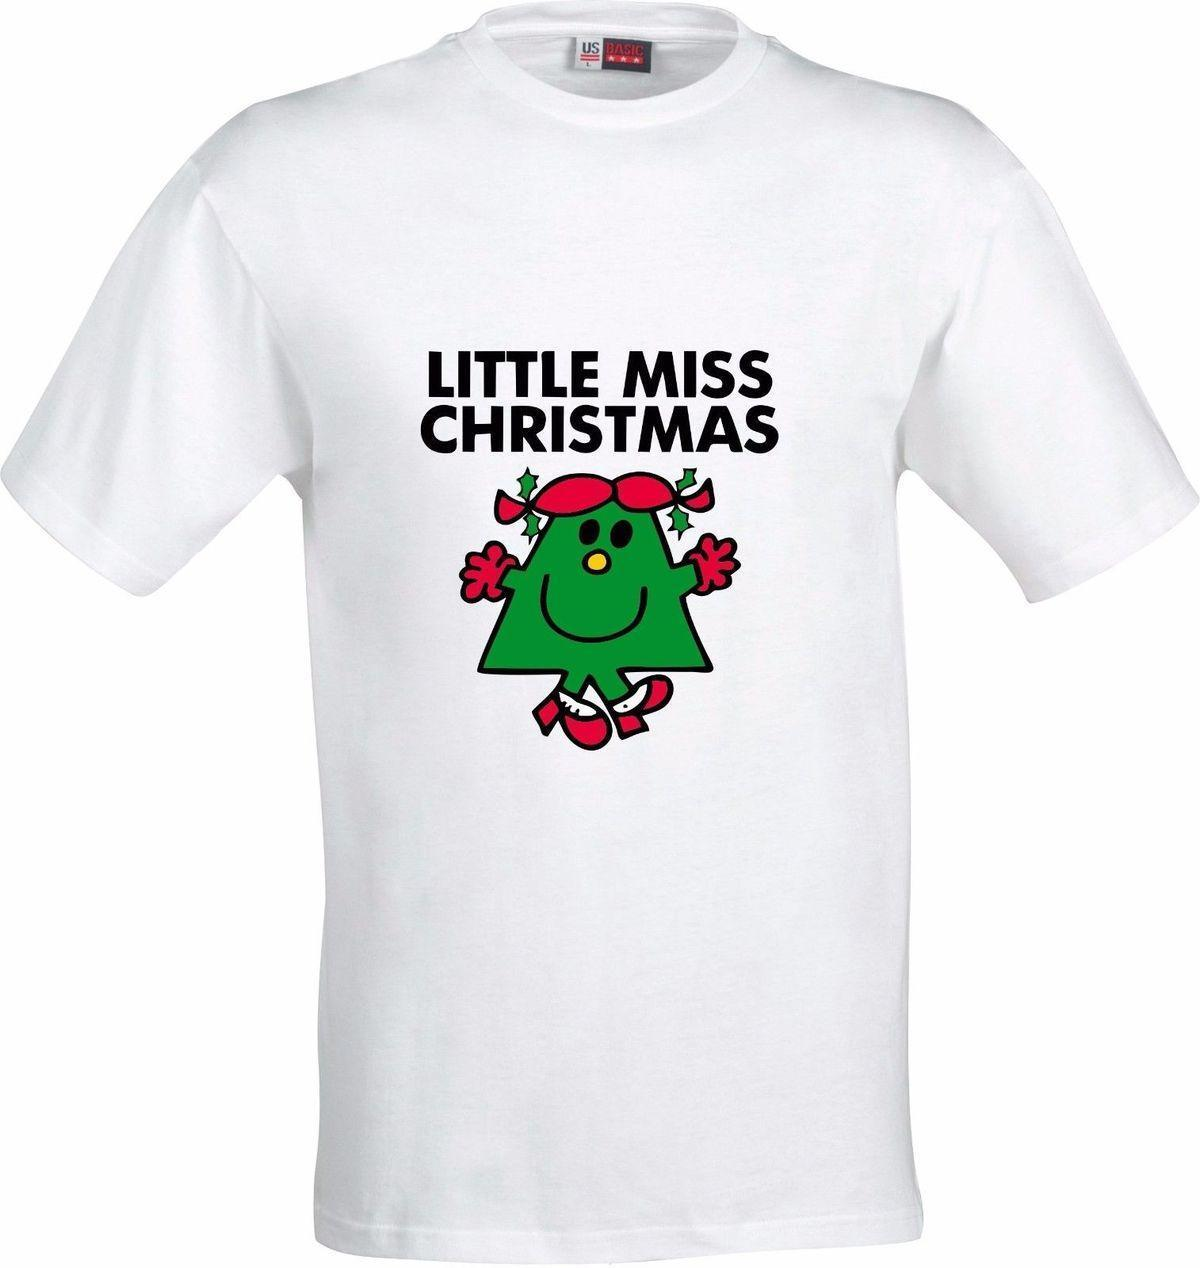 LITTLE MISS CHRISTMAS GIFT FULL COLOR SUBLIMATION T SHIRT Men S Funny  Harajuku T Shirt Top Tee Casual Printed Tee Plus Suze Design Your Own T Shirts  Womens ... 379cfb94a6